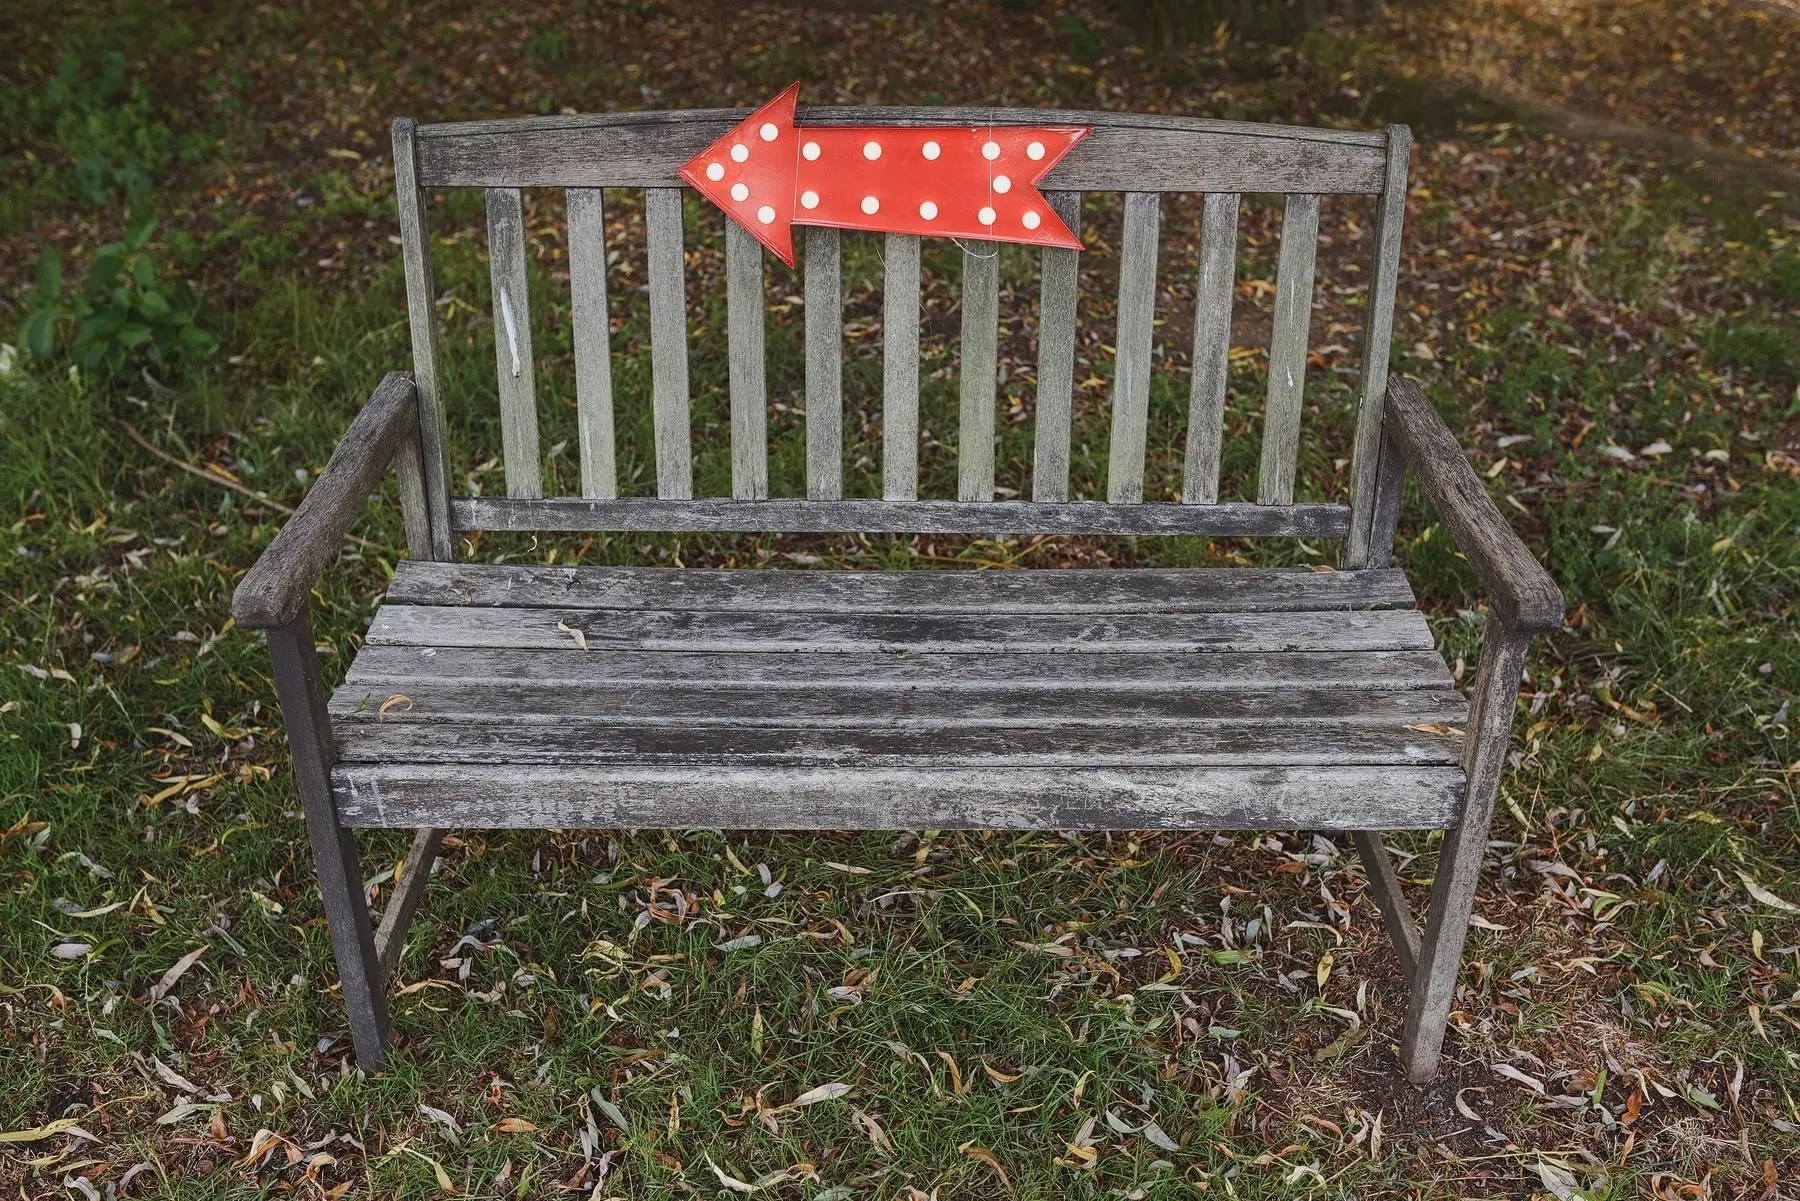 a bench with a red arrow